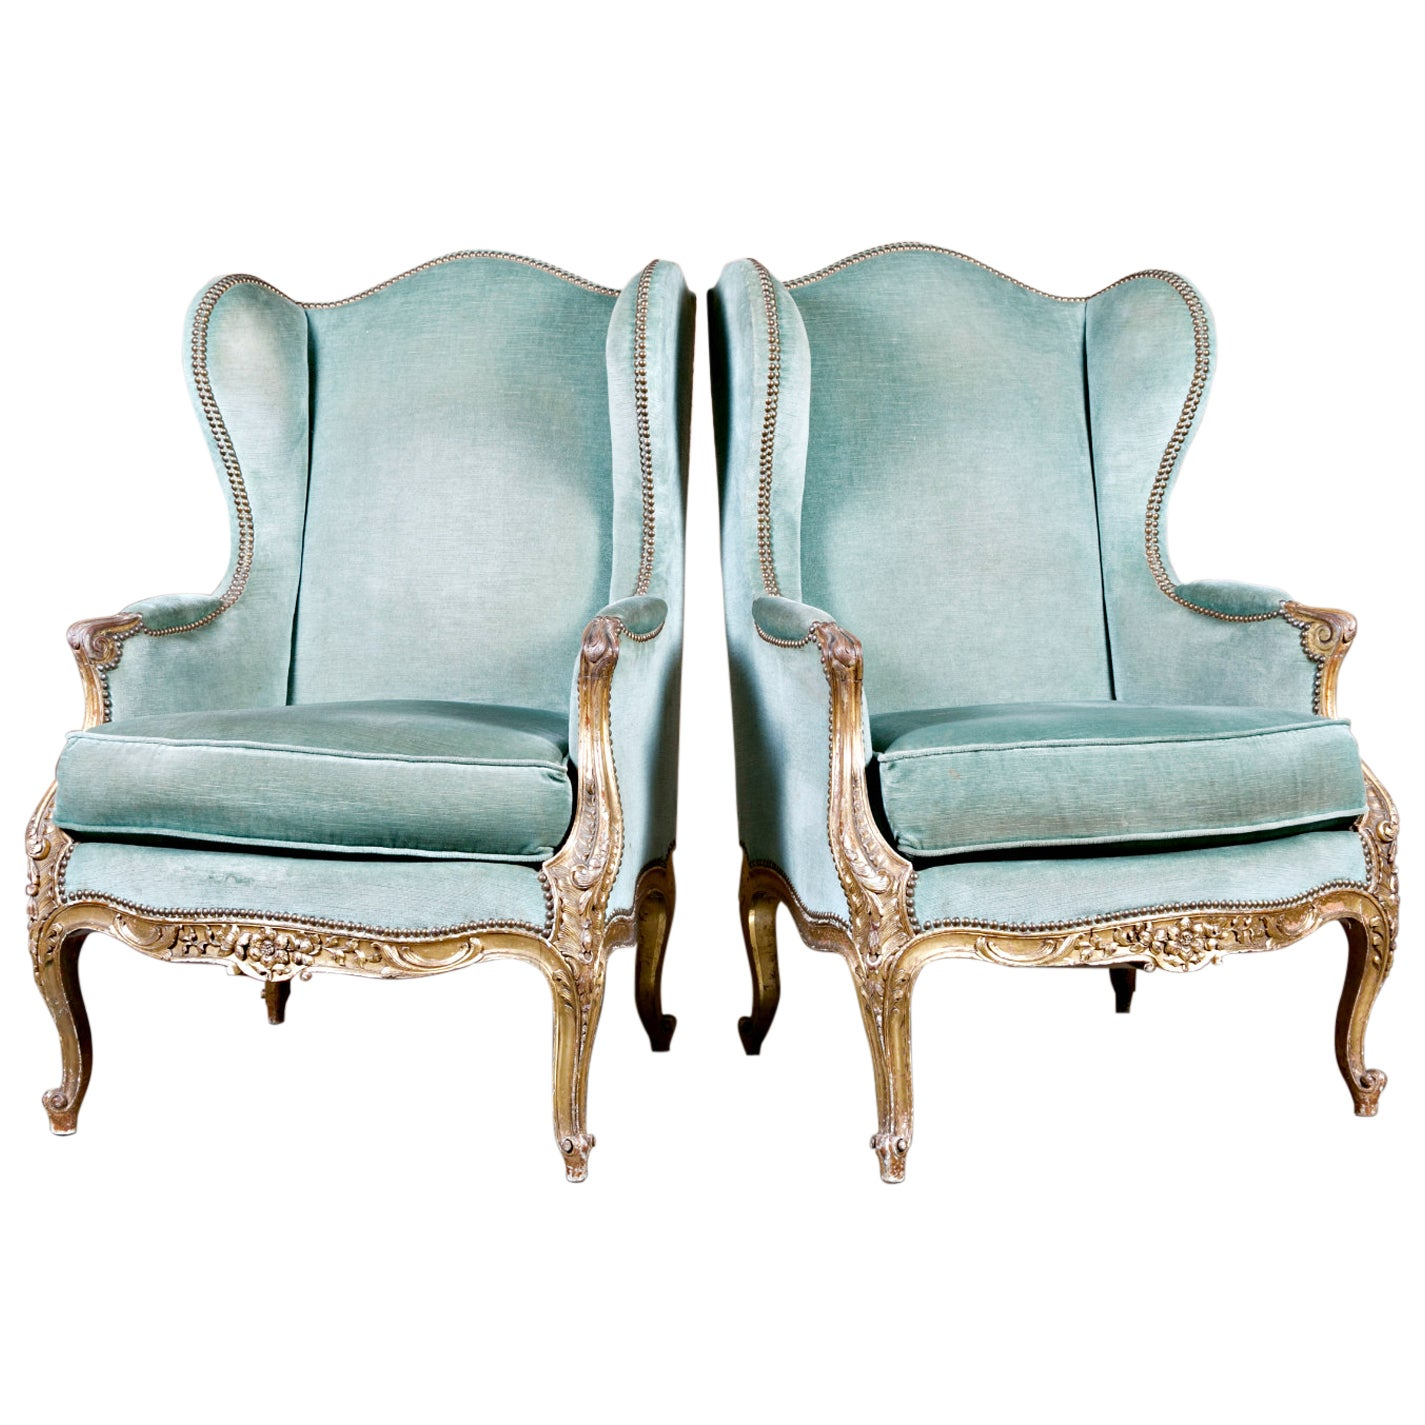 Pair of Exceptional 19th Century French Carved Giltwood Louis XV Style Bergeres